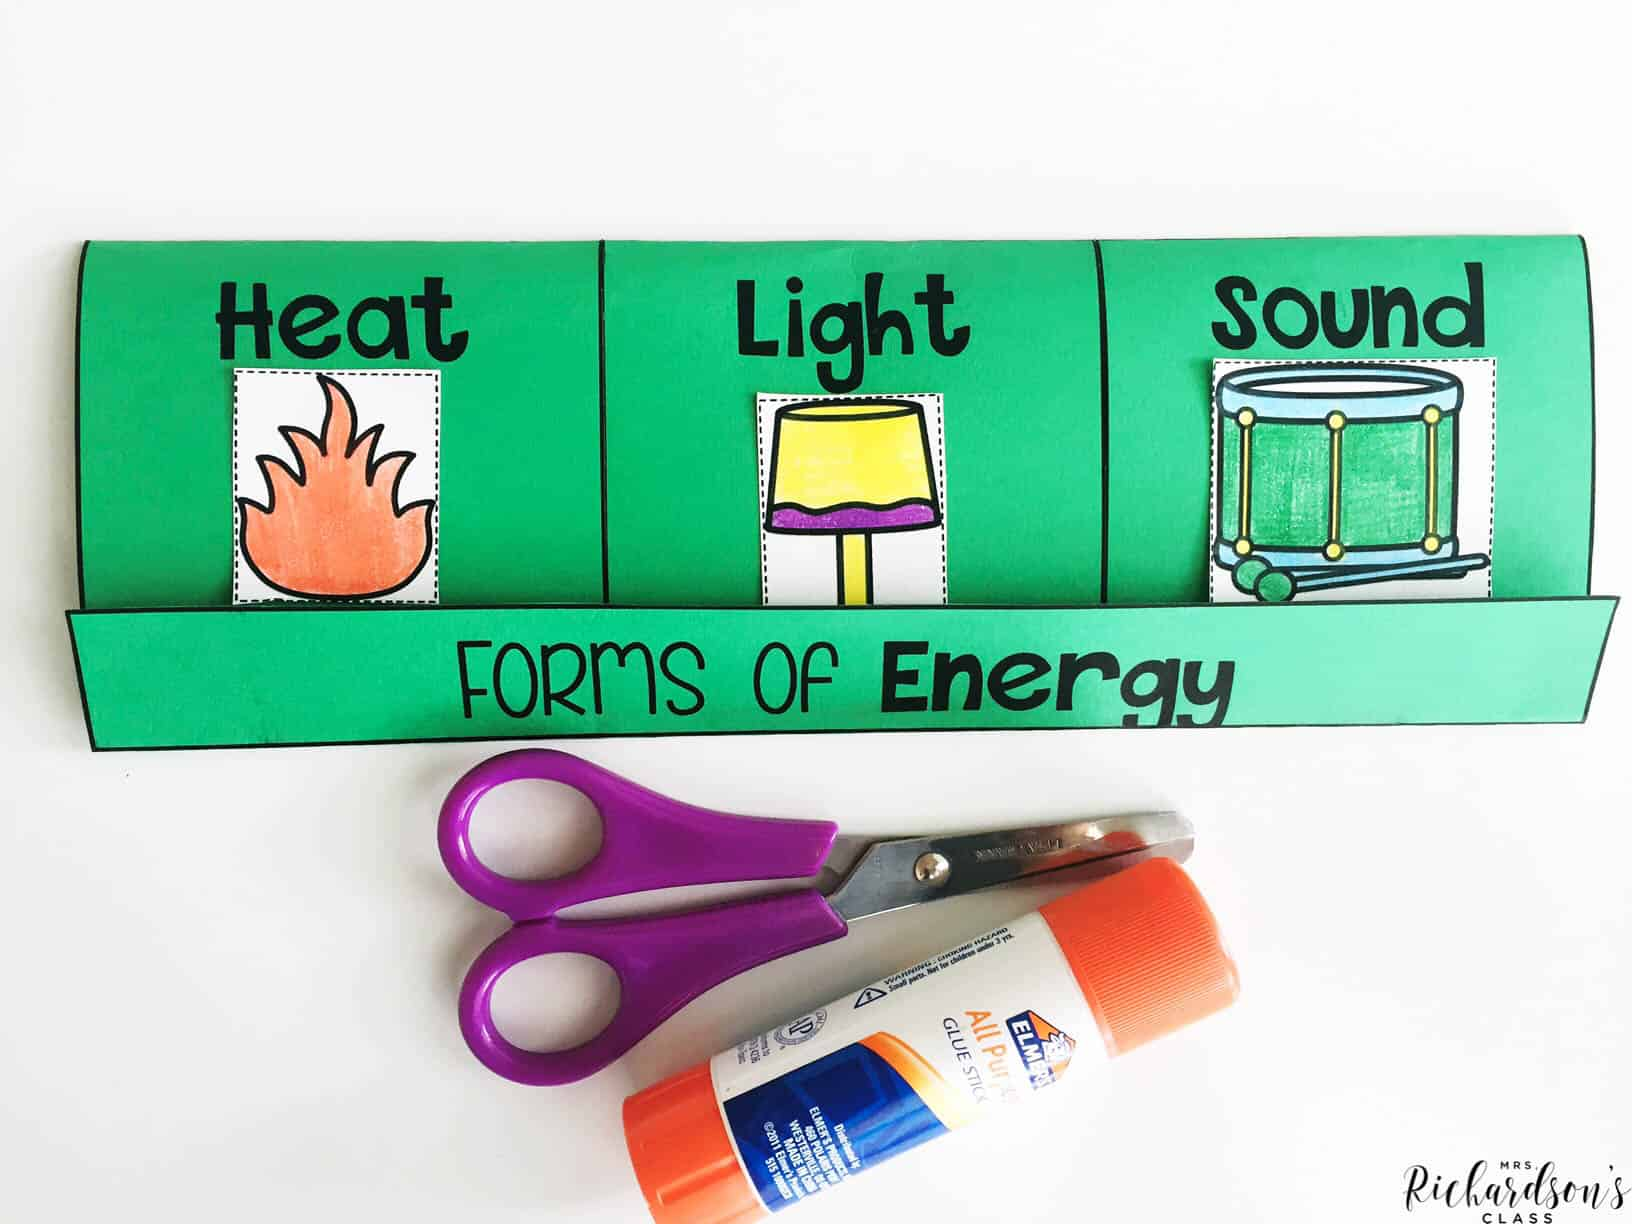 This forms of energy flip book helps students communicate their learning!